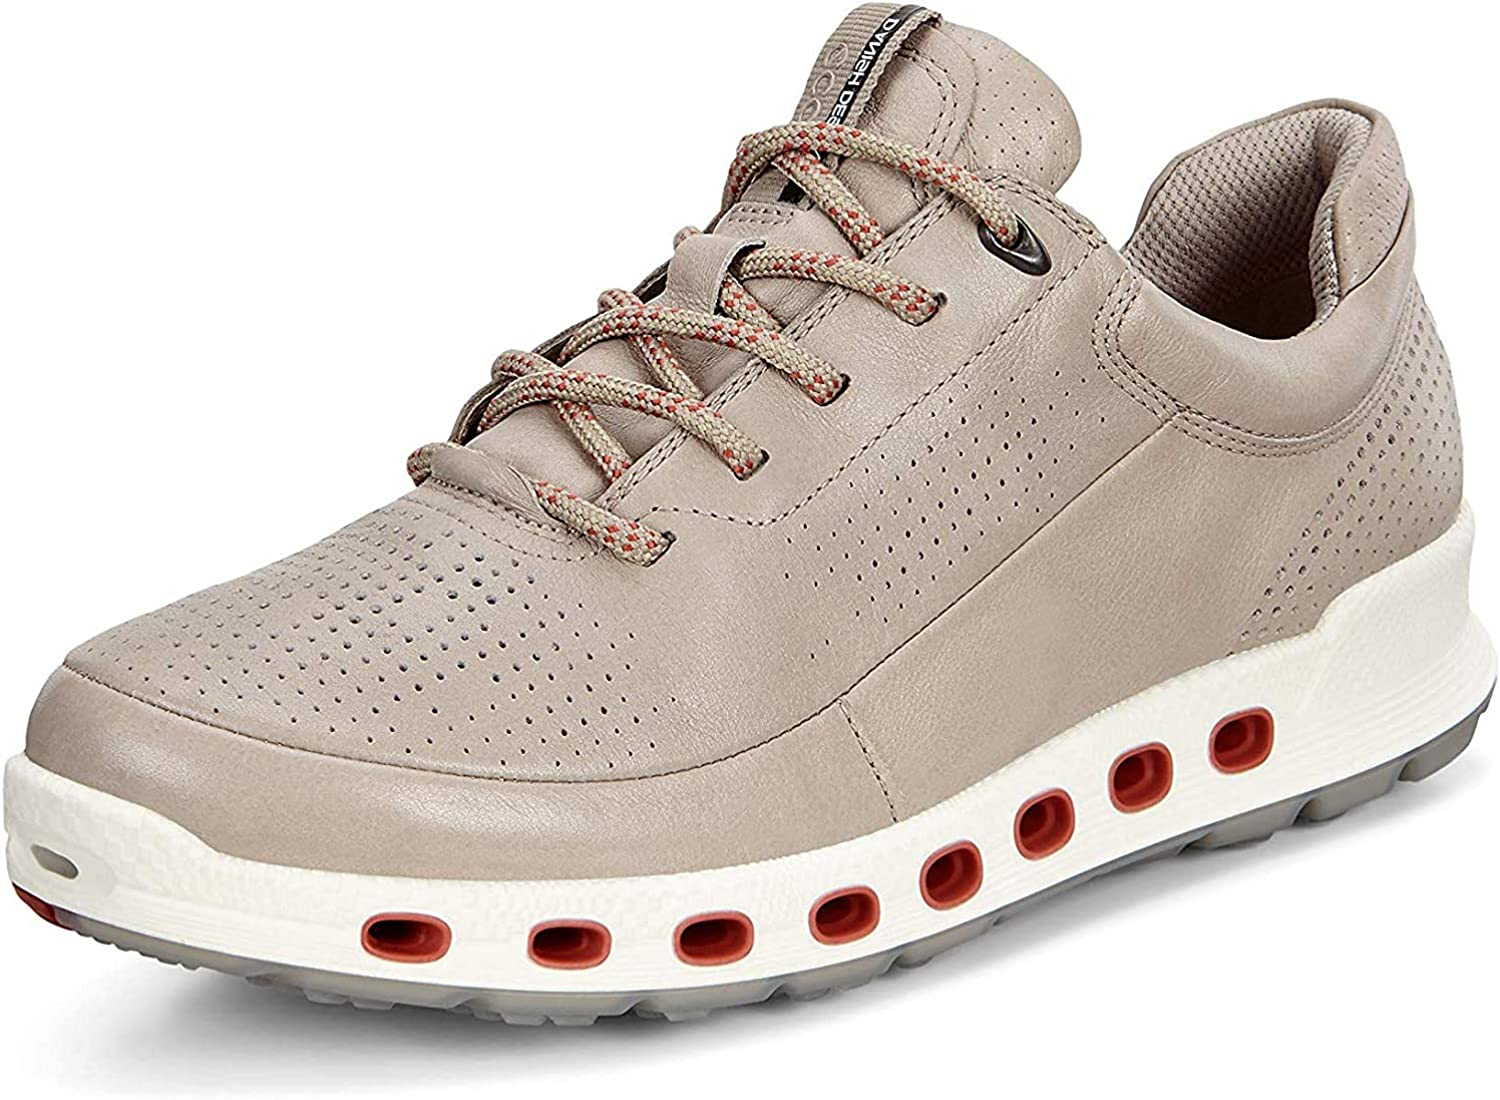 Cool 2.0 Sneakers Shoes